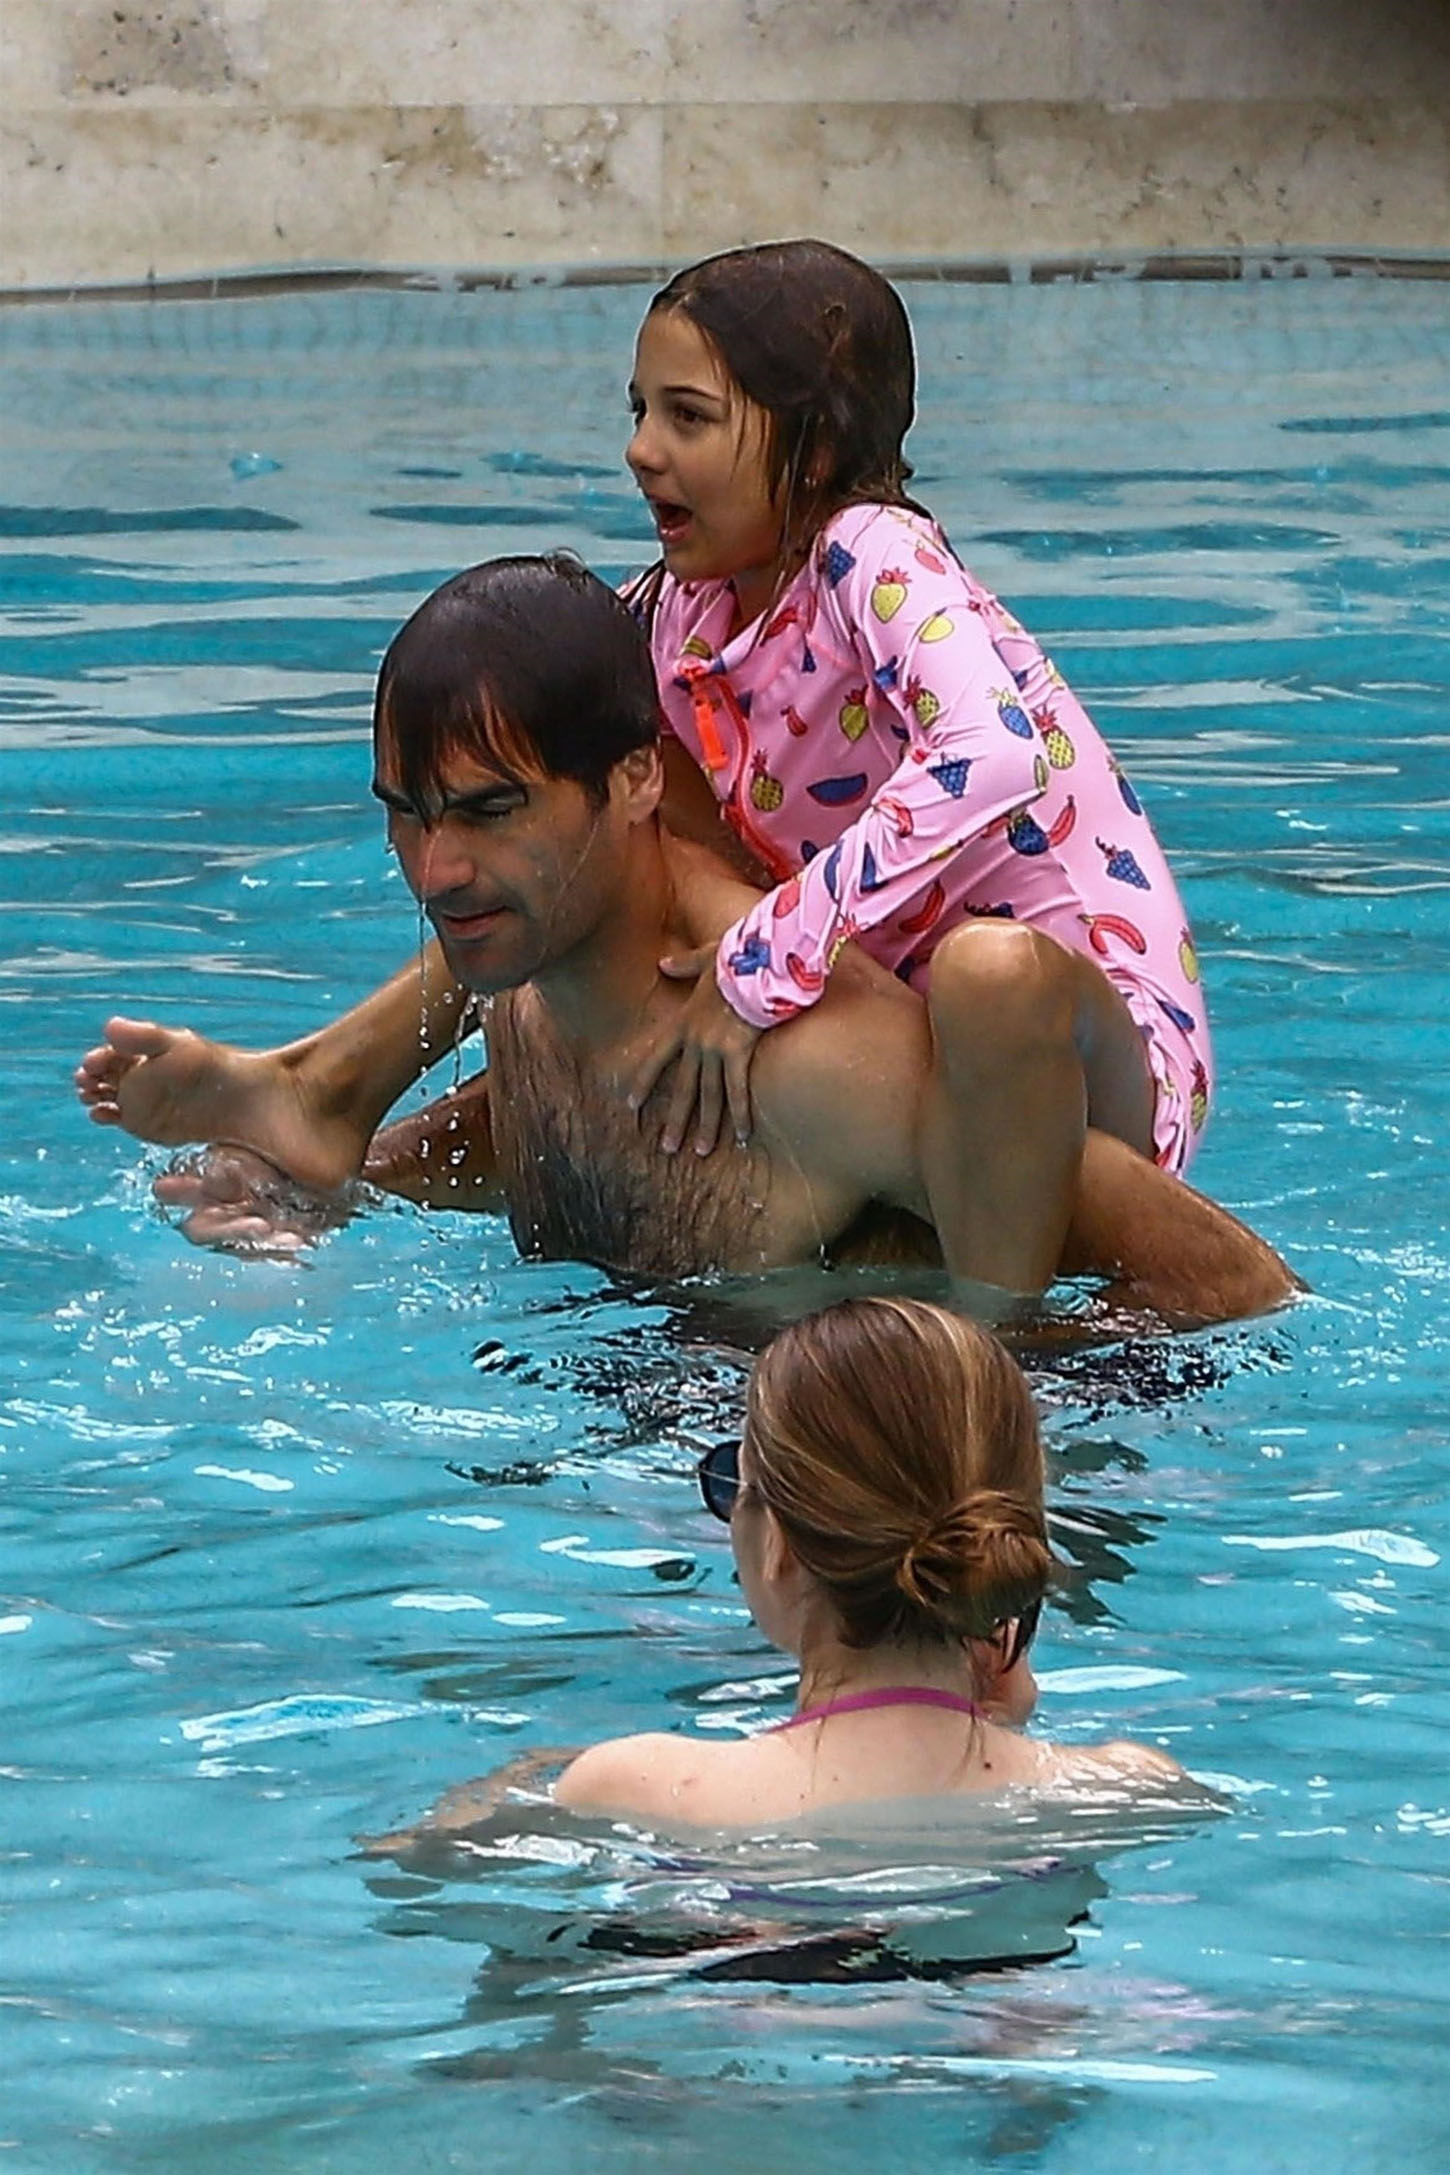 Miami, FL  - *EXCLUSIVE*  - World ranked #1 tennis player Roger Federer and his wife Mirka enjoy a day at the pool with their kids Myla, Charlene, Leo and Lenny in Miami. Roger had fun splashing around with his kids while Mirka just relaxed in the pool.  Pictured: Roger Federer, Mirka Federer, Myla Federer, Charlene Federer  BACKGRID USA 21 MARCH 2018, Image: 366600906, License: Rights-managed, Restrictions: , Model Release: no, Credit line: Profimedia, AKM-GSI